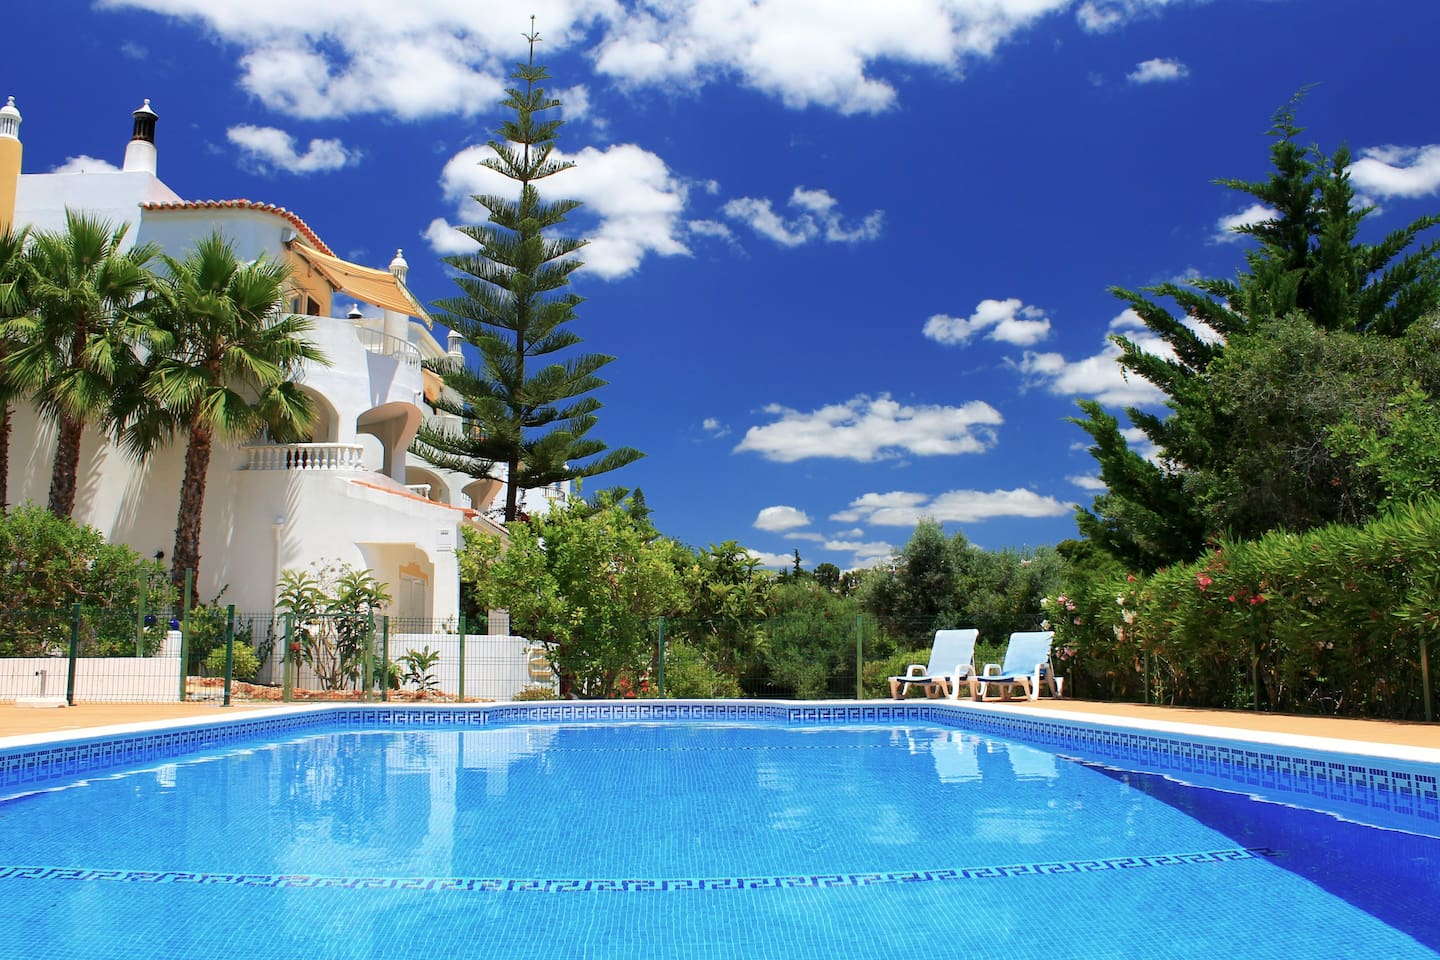 The pool shared with only 9 other apartments and equipped with sun loungers exclusively belonging to the apartment.